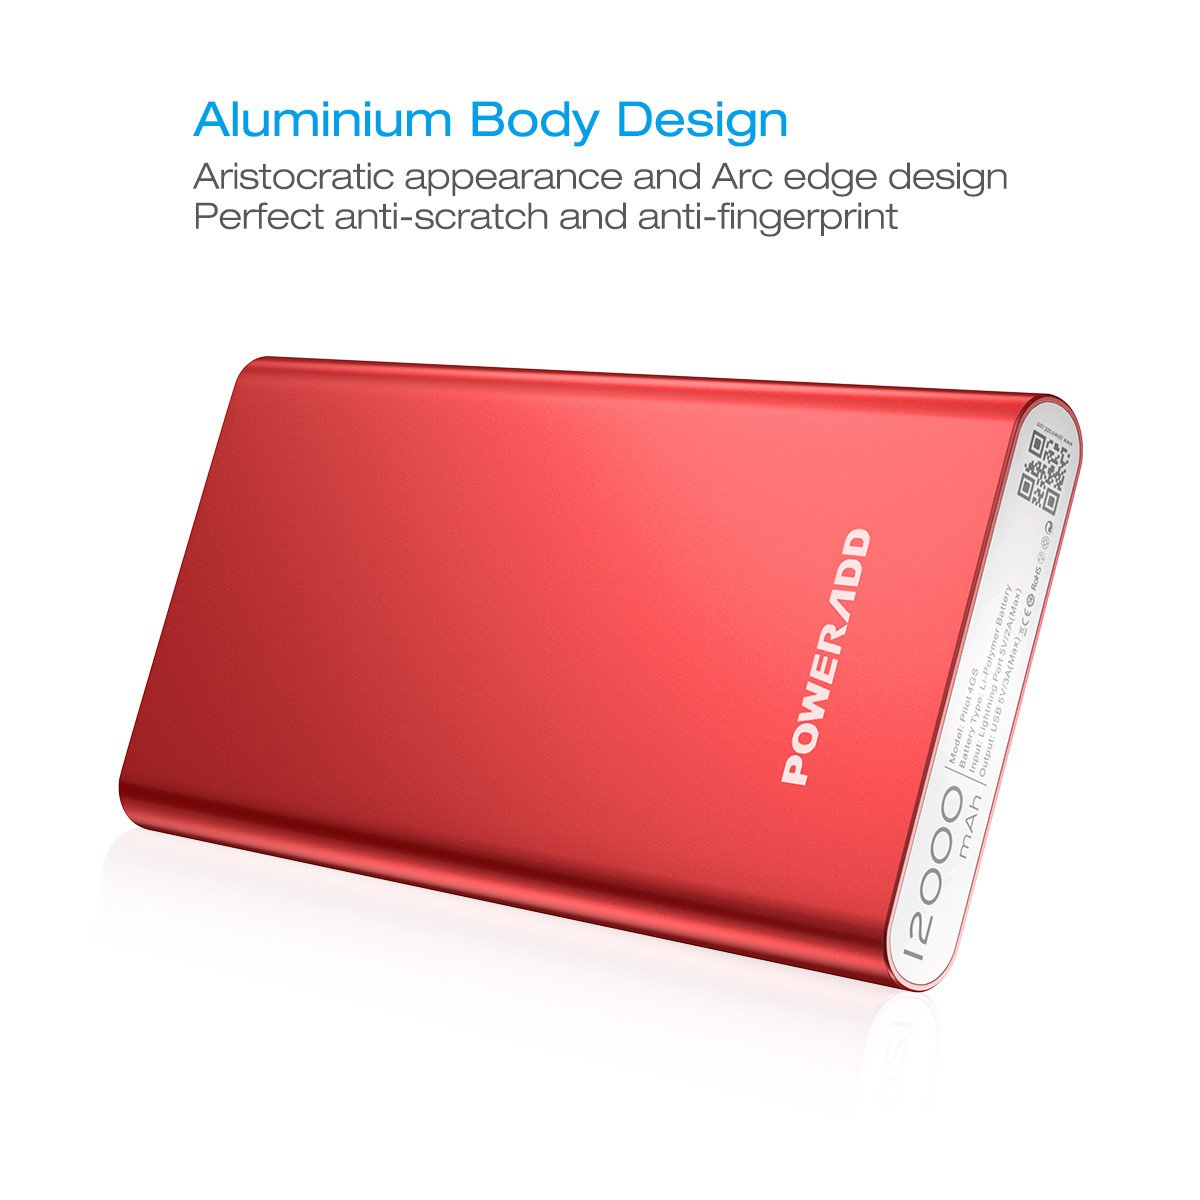 Apple Lightning 12000mAh Portable Charger, Poweradd Pilot 4GS Dual 3A External Battery Pack with Lightning 8-Pin Cable 3.3ft/1M for iPhone, iPad, Samsung Galaxy and More - Limited Red